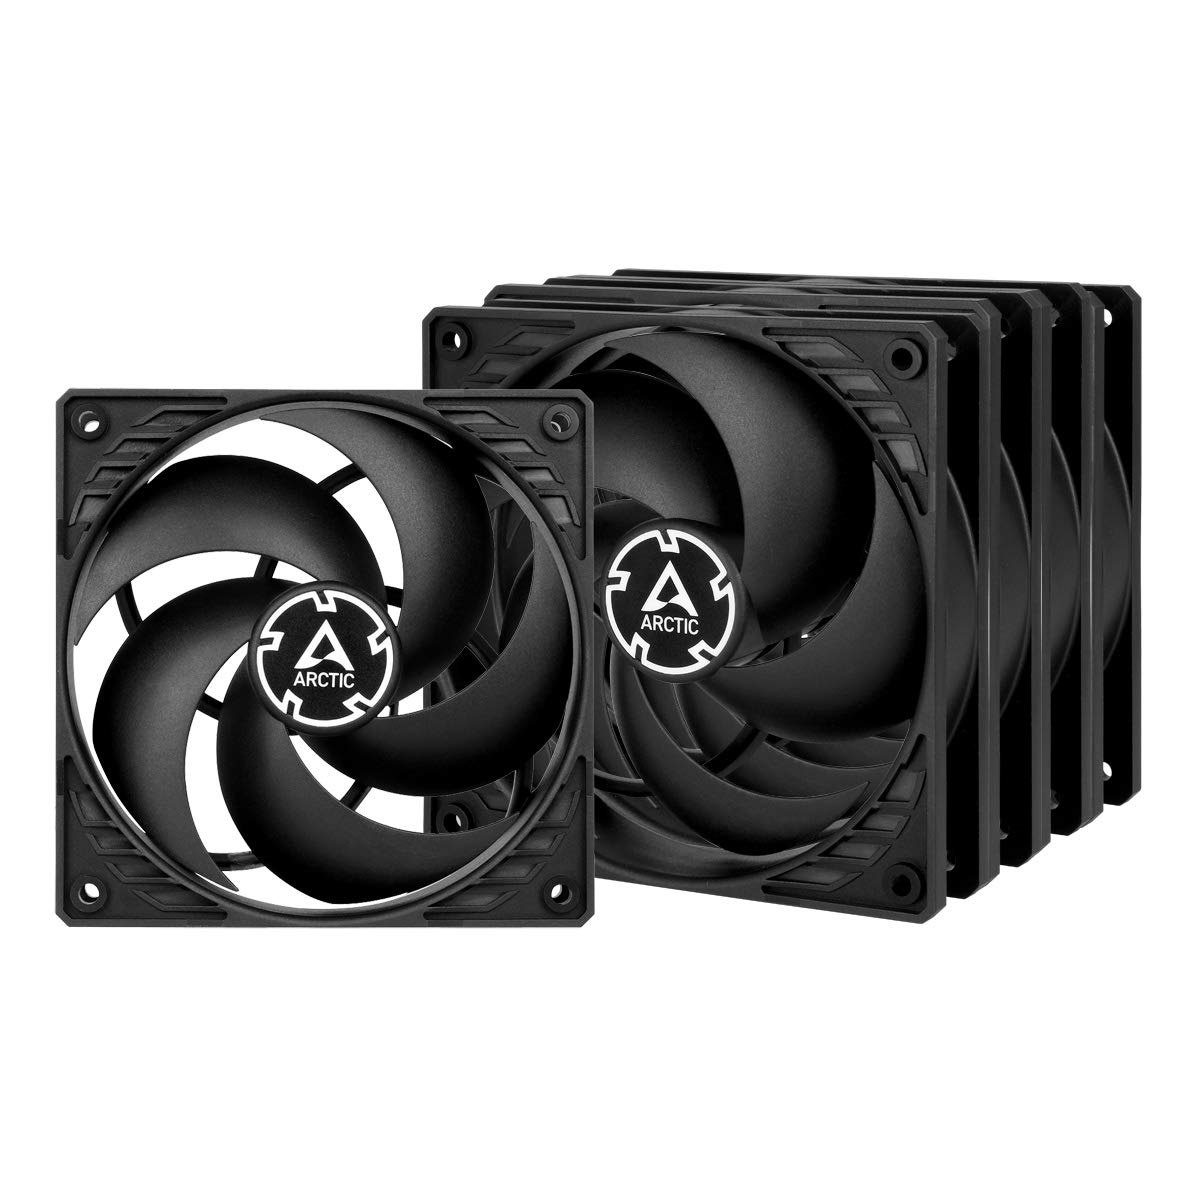 ARCTIC P12 PWM PST (Black/Black) Value Pack - Pressure-optimised 120 mm Fan with PWM and PST (PWM Sharing Technology) by ARCTIC